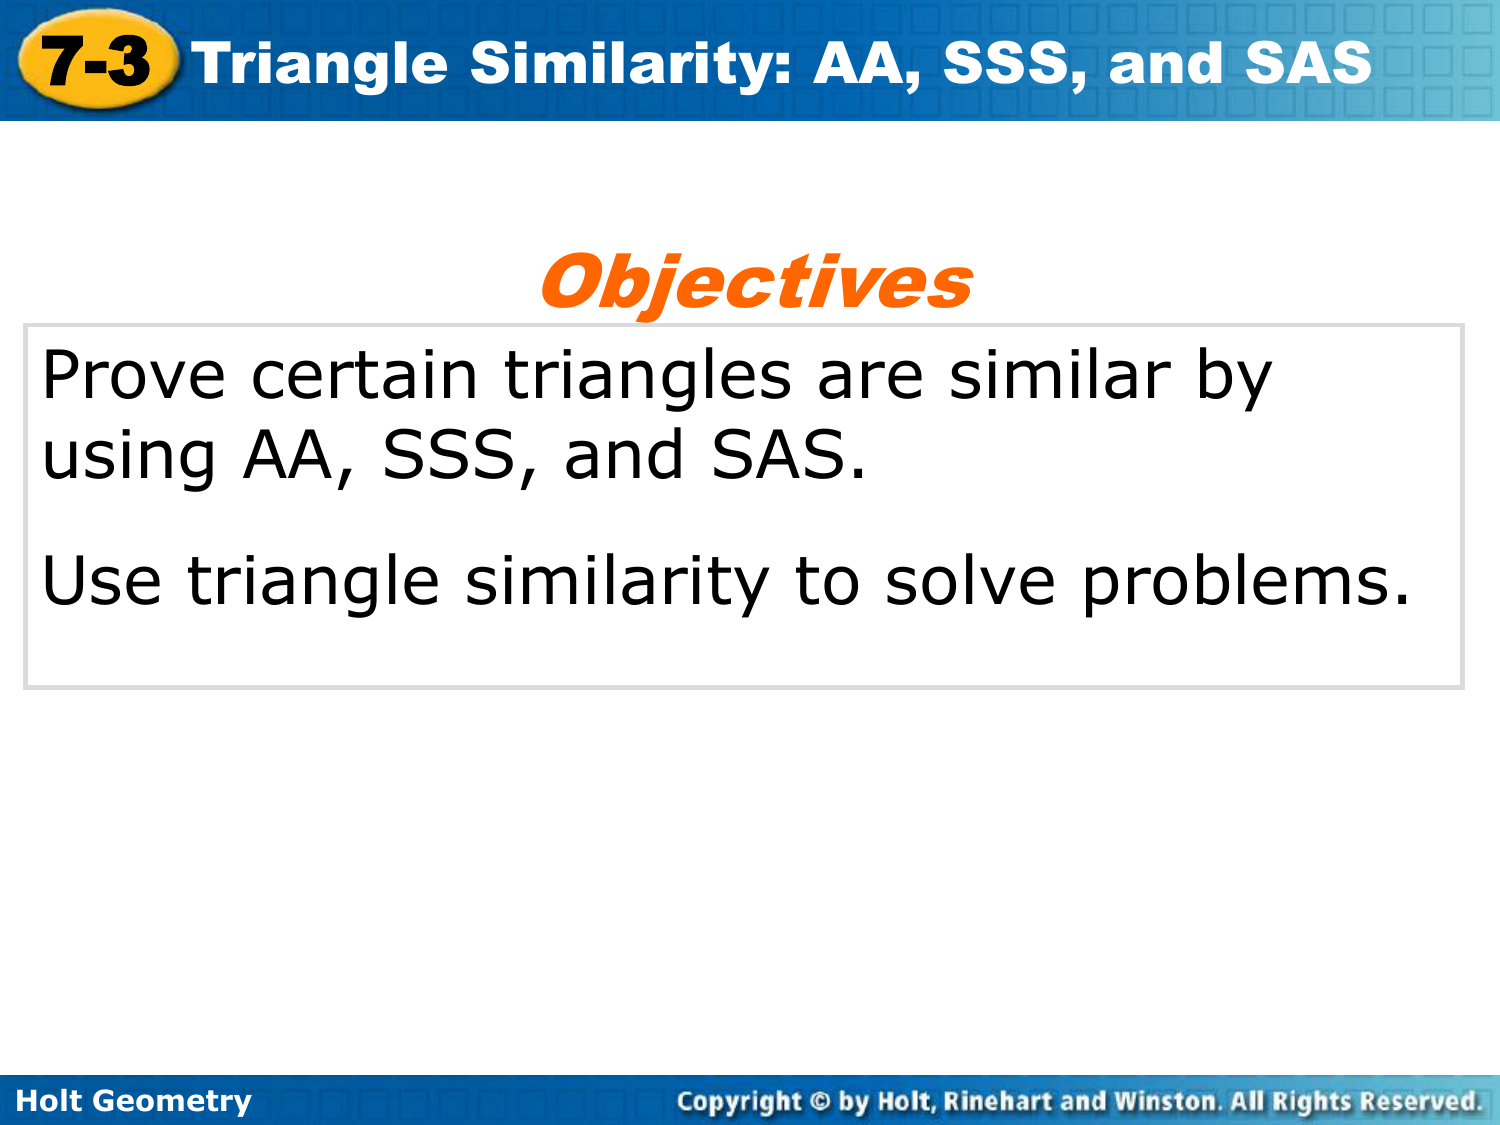 problem solving triangle similarity aa sss and sas